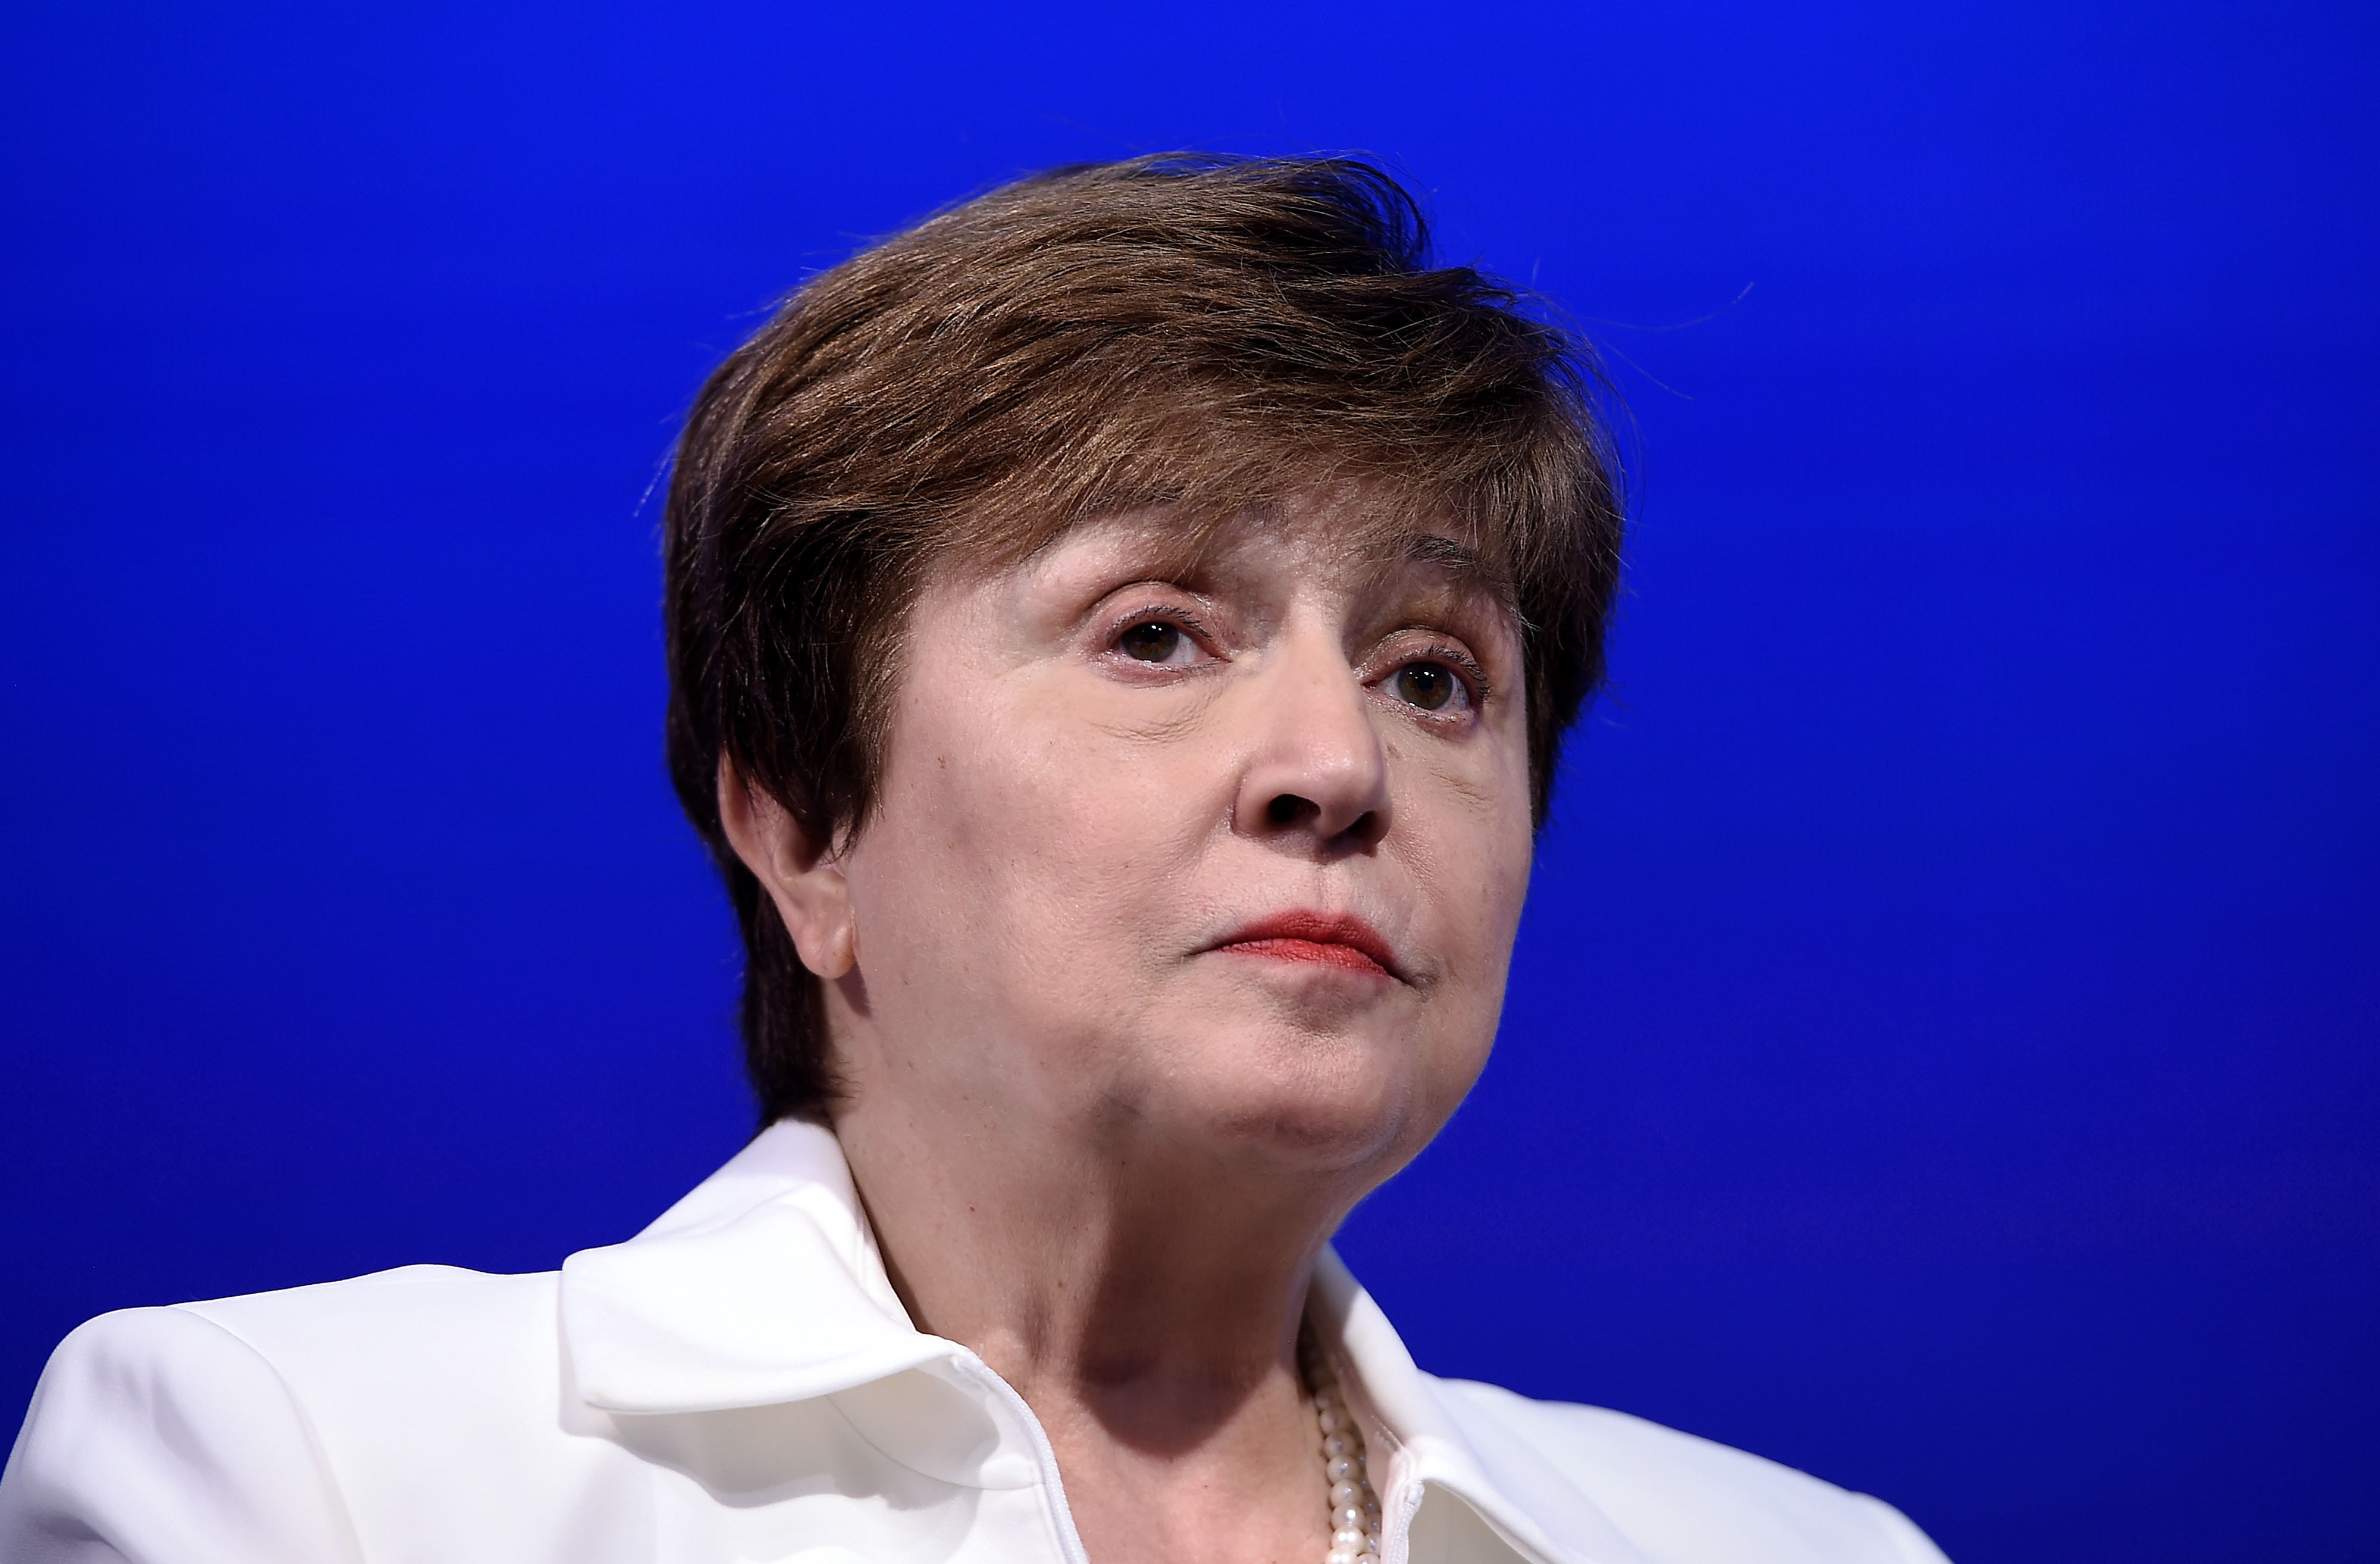 Kristalina Georgieva, the managing director of the International Monetary Fund, attends a meeting in Washington, DC, on October 15, 2019.